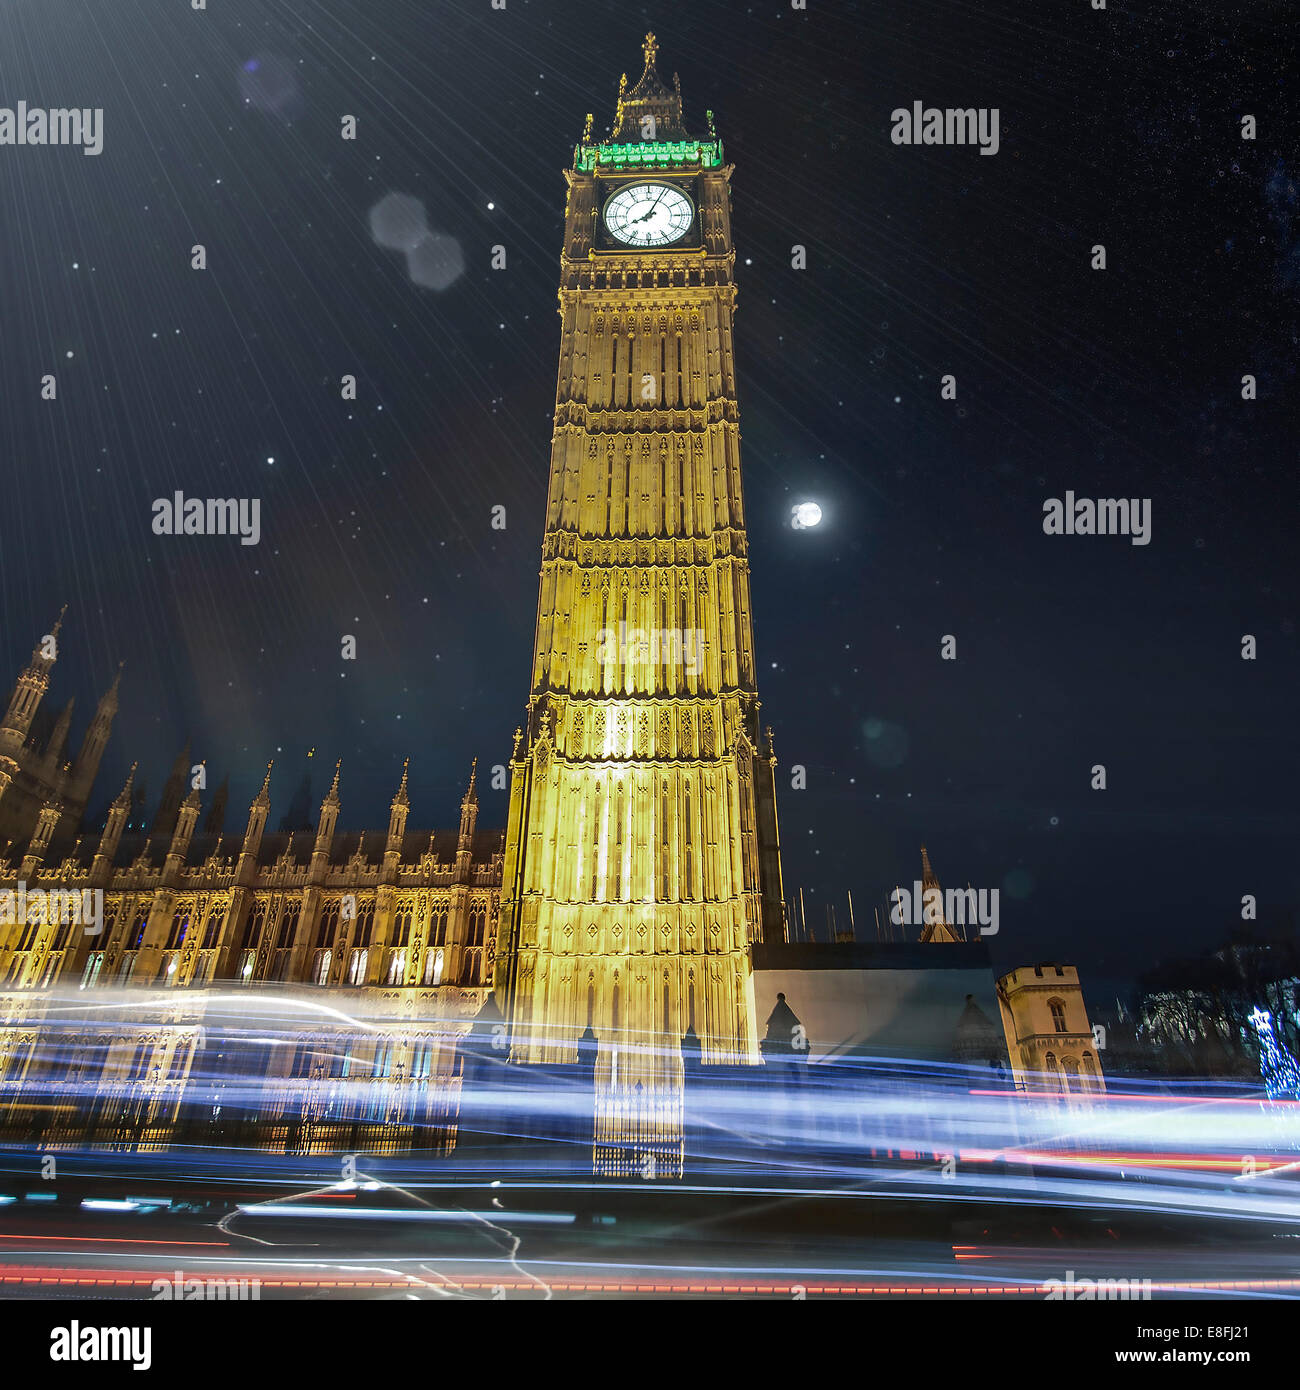 Big Ben in der Nacht mit Lichtspuren, London, England, UK Stockbild